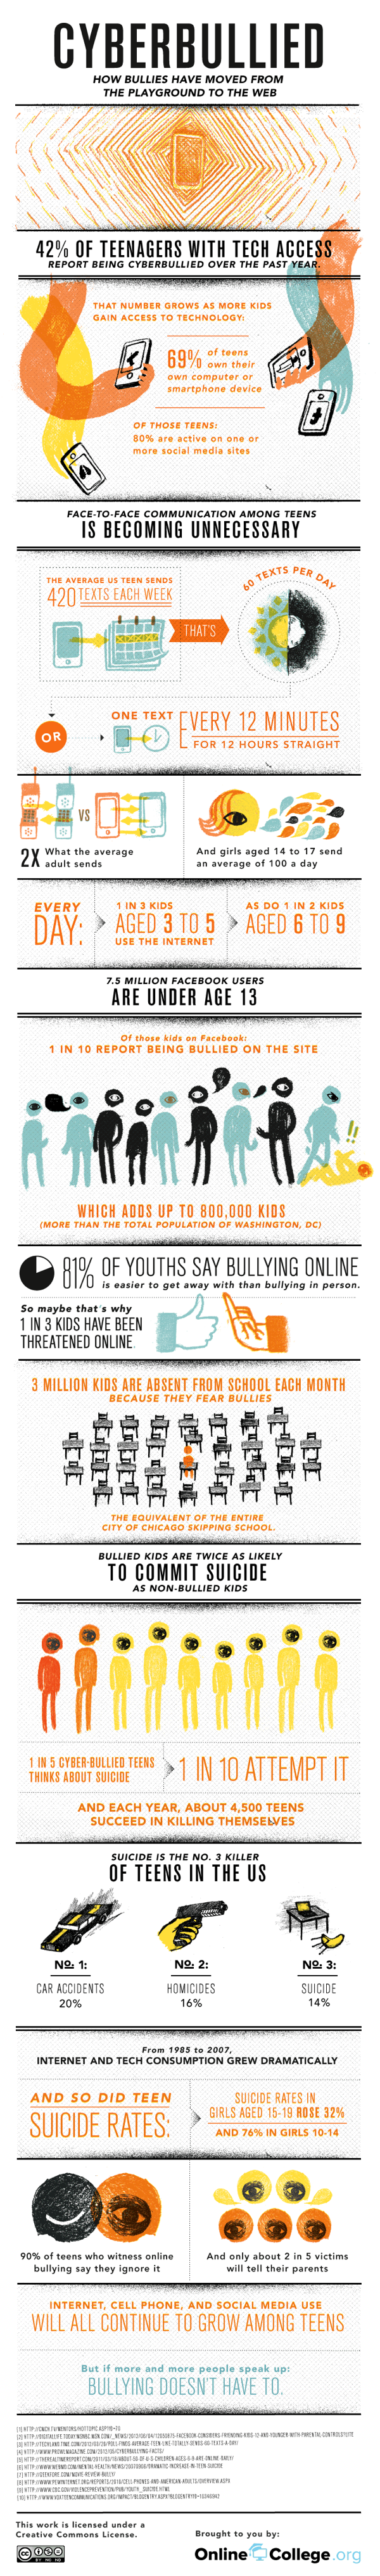 Cyberbullying.  Alarming info.  Talk to your kids...